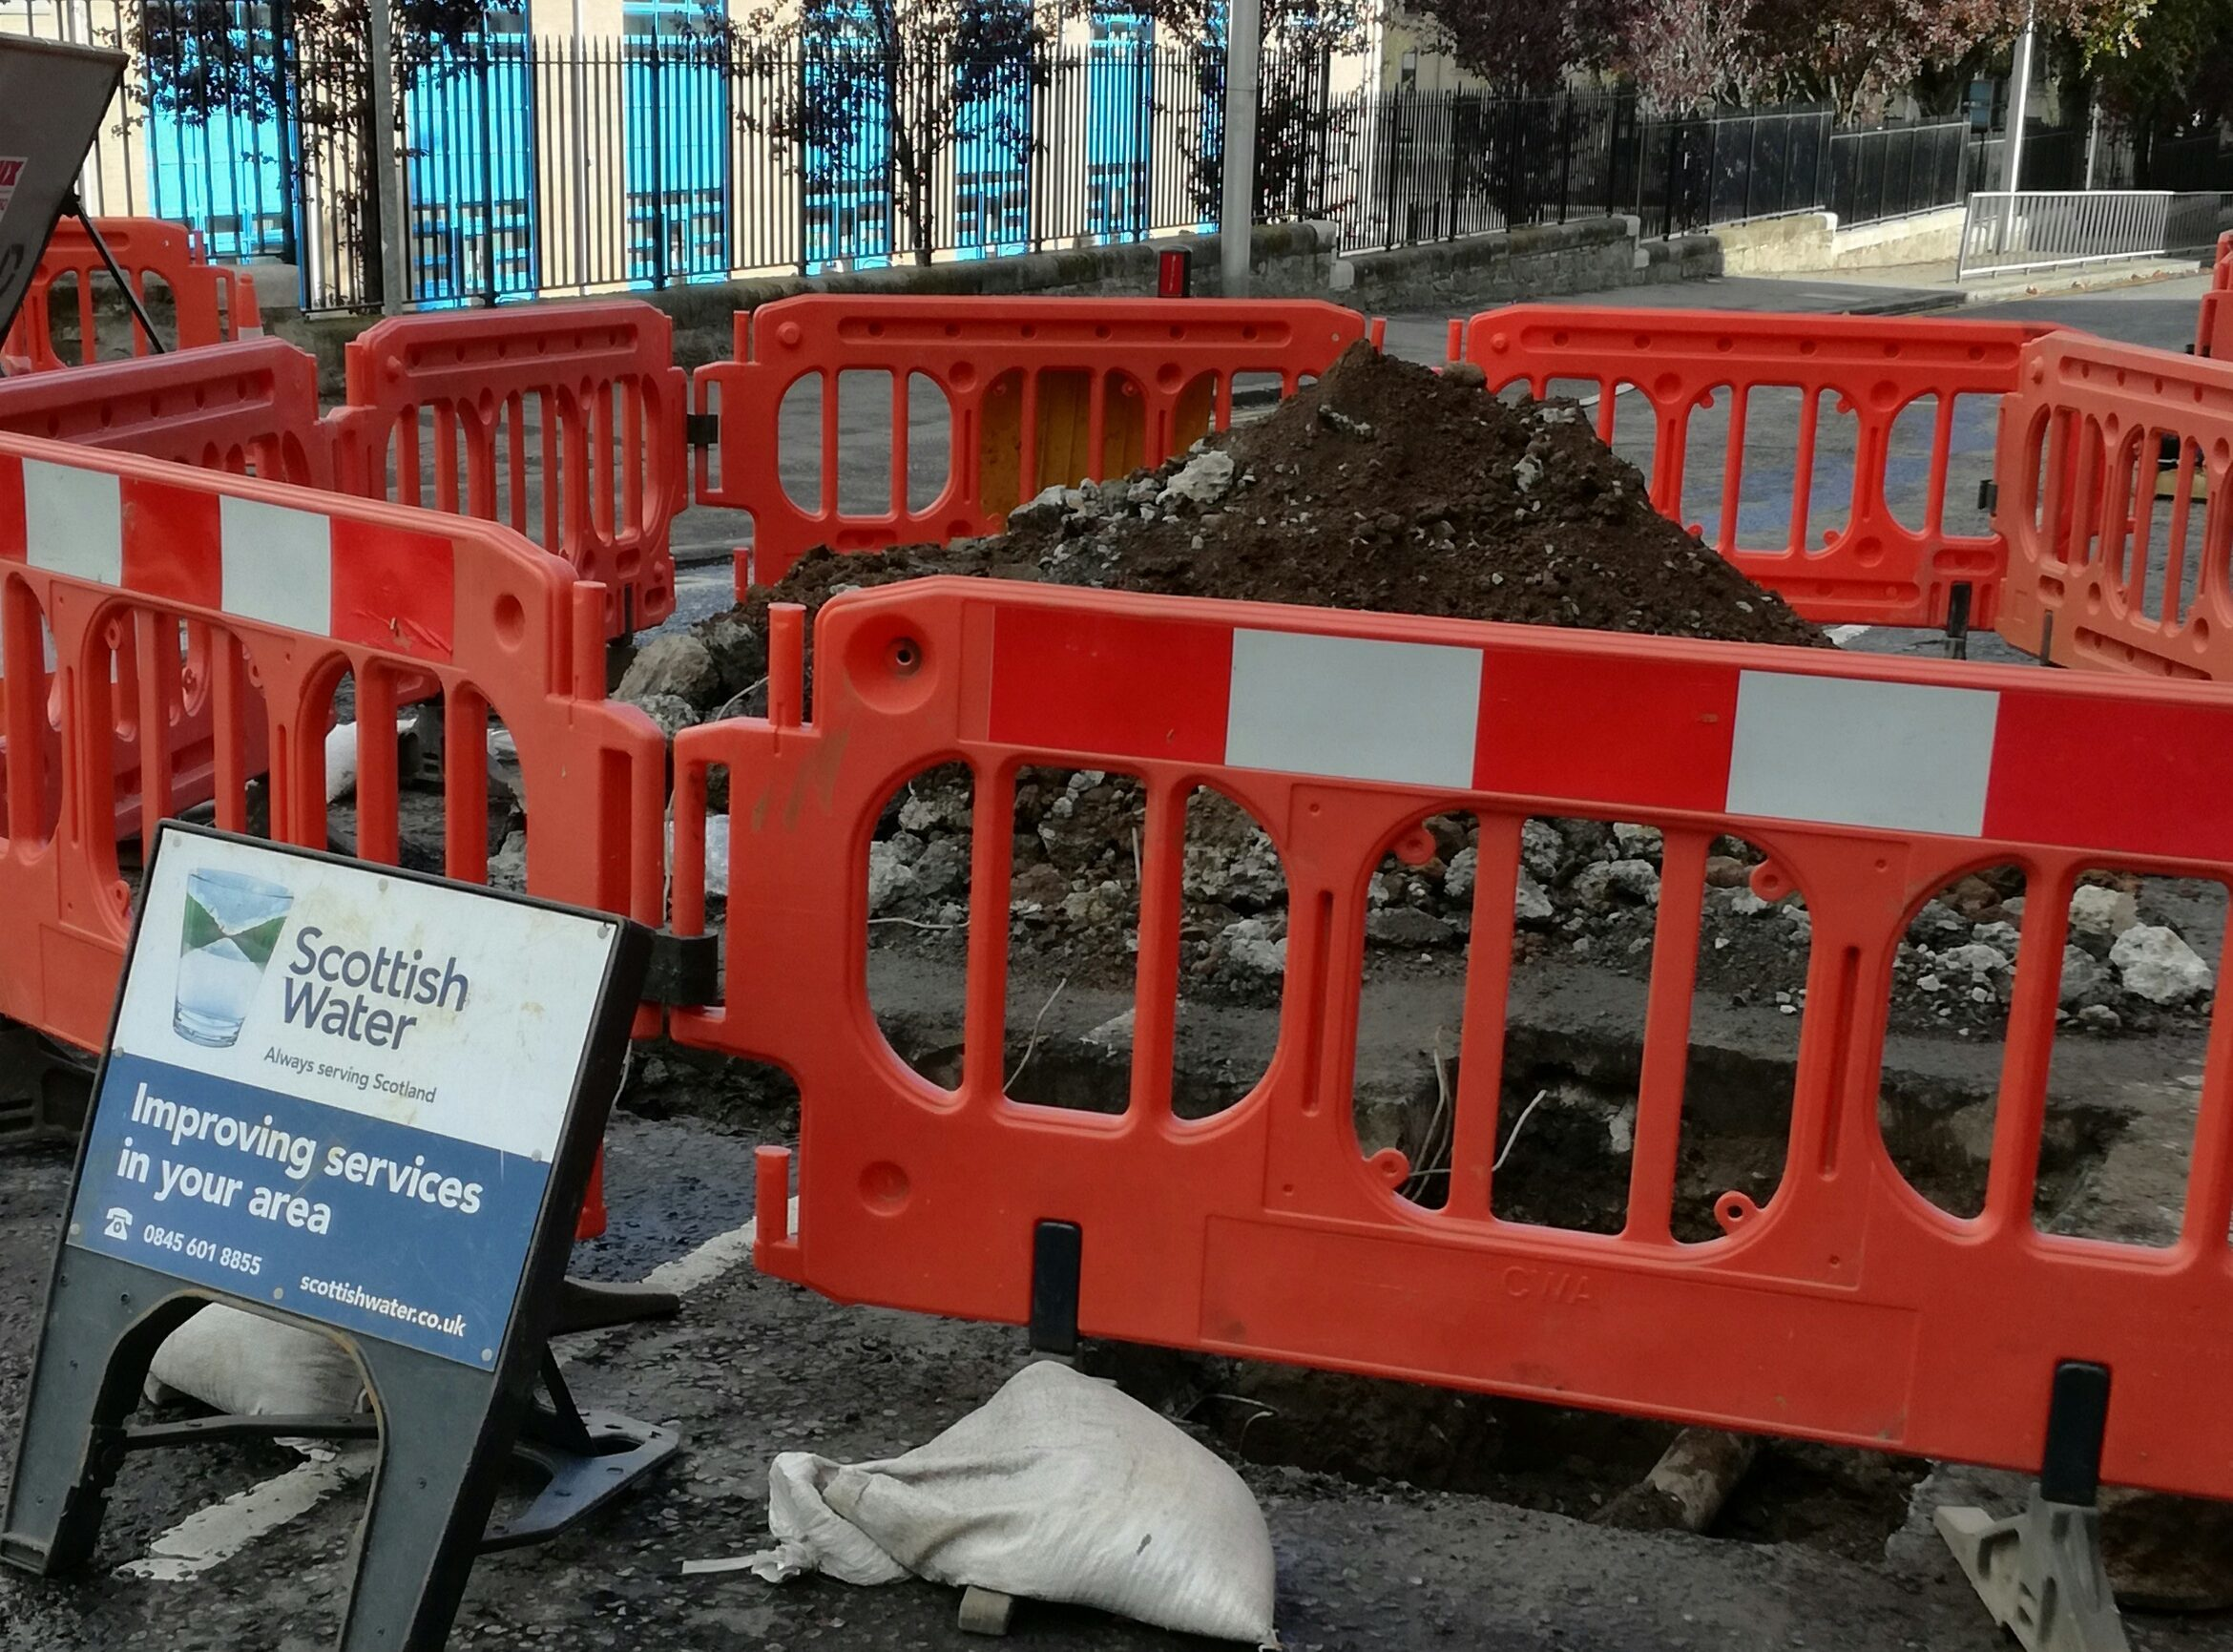 The next stage of works will begin on October 17, say Scottish Water.